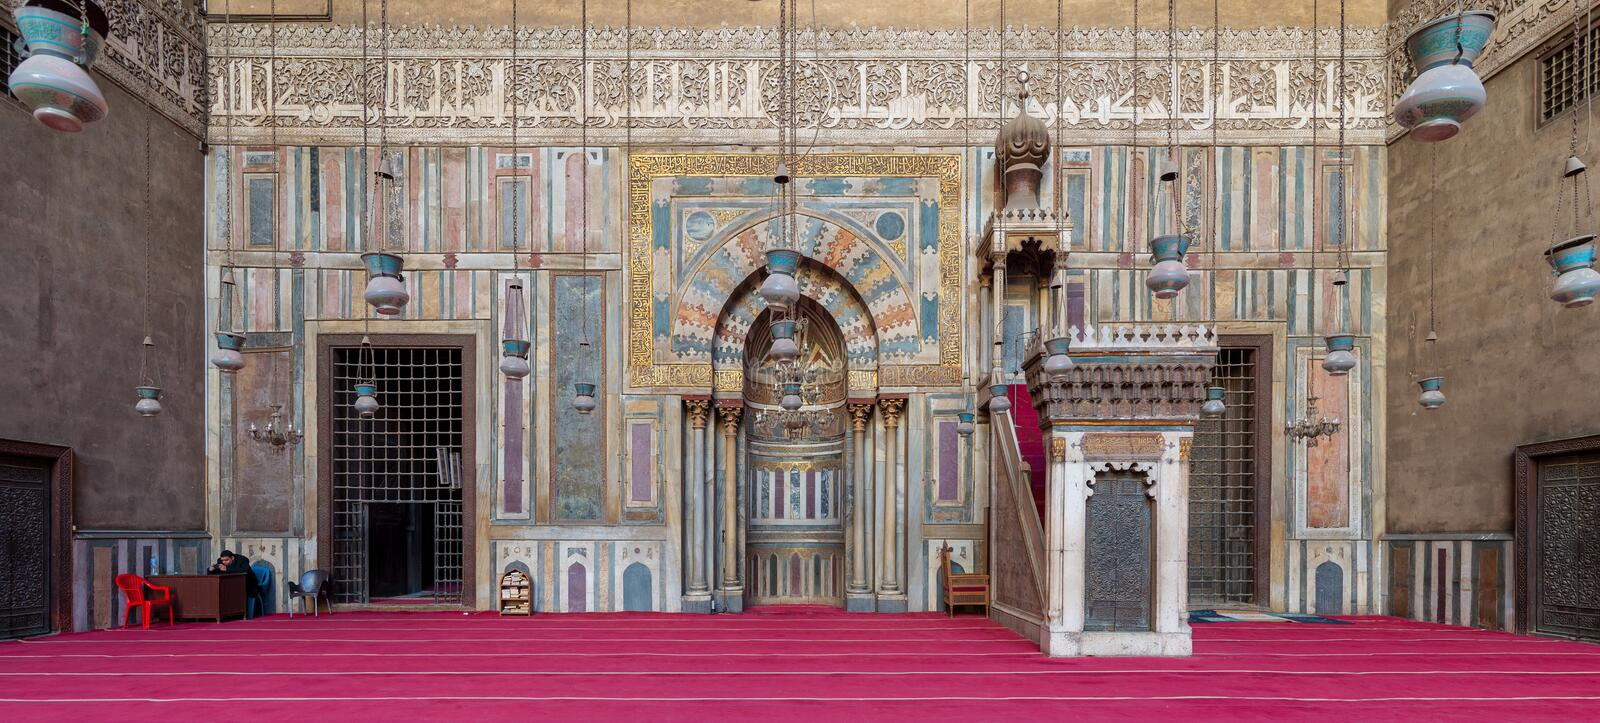 Colorful marble wall with engraved Mihrab niche and wooden Minbar Platform at the Mosque of Sultan Hassan, Cairo, Egypt royalty free stock image